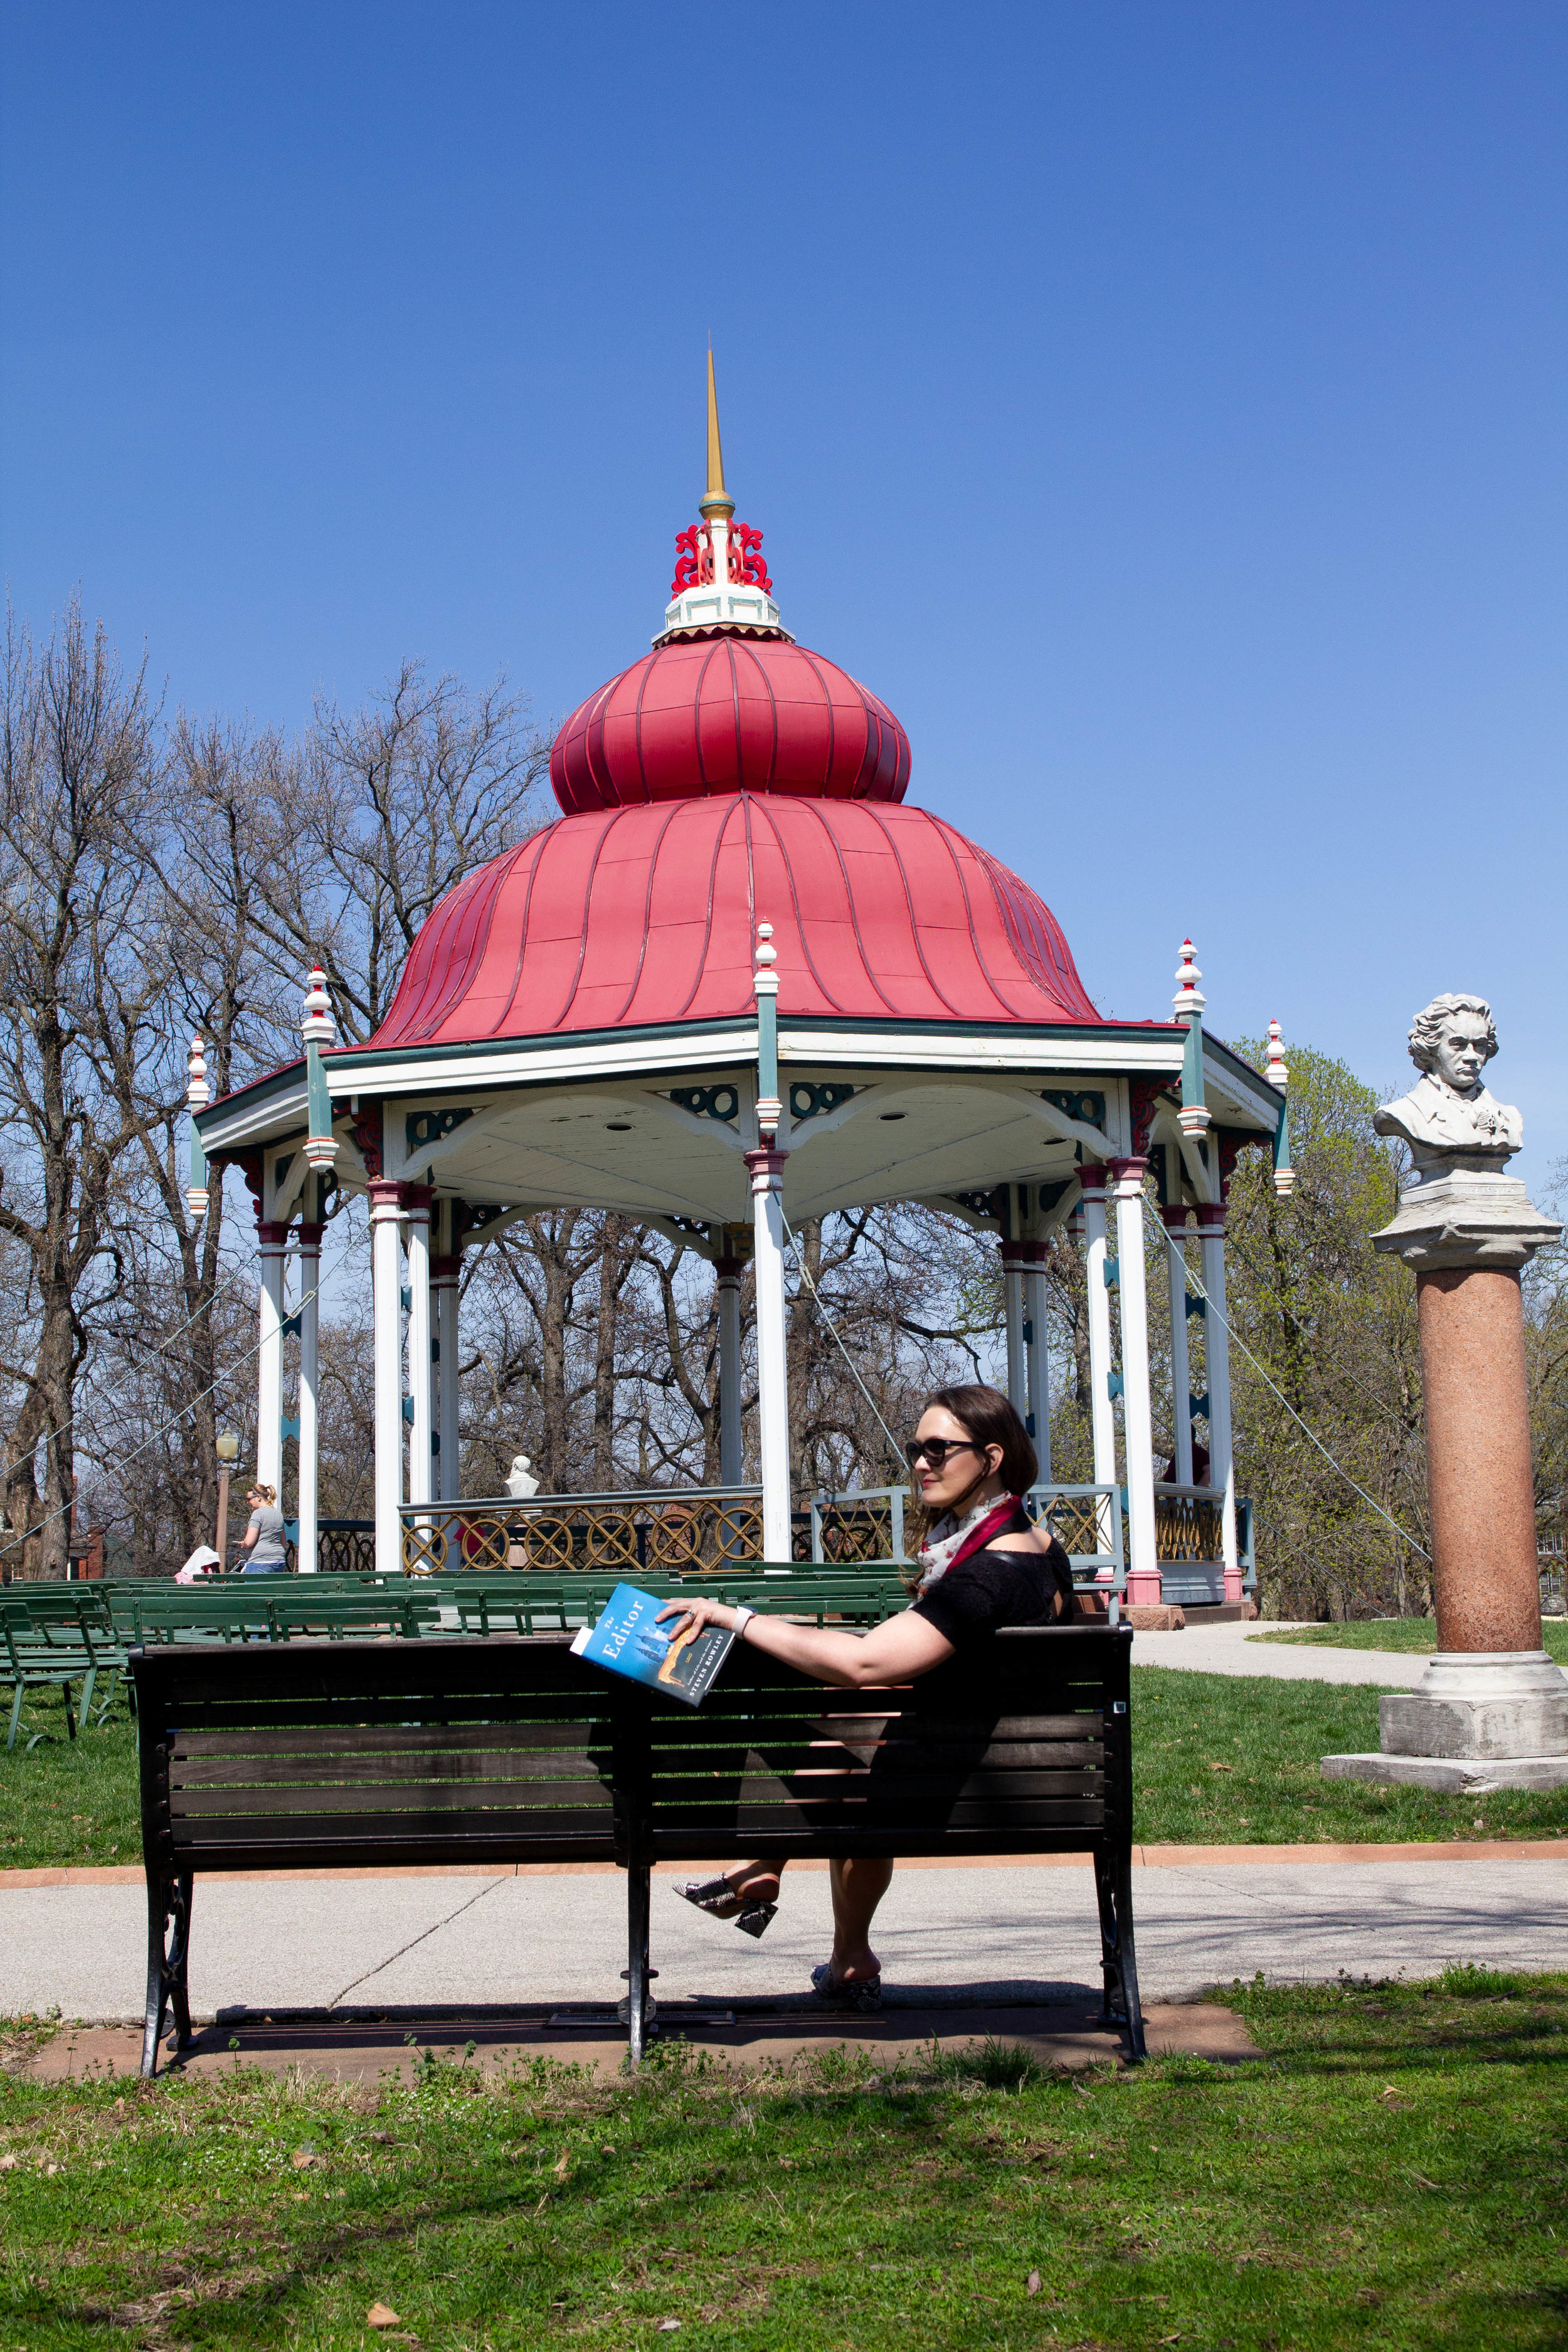 Reading The Editor by Steven Rowley at Tower Grove Park in St. Louis, MO